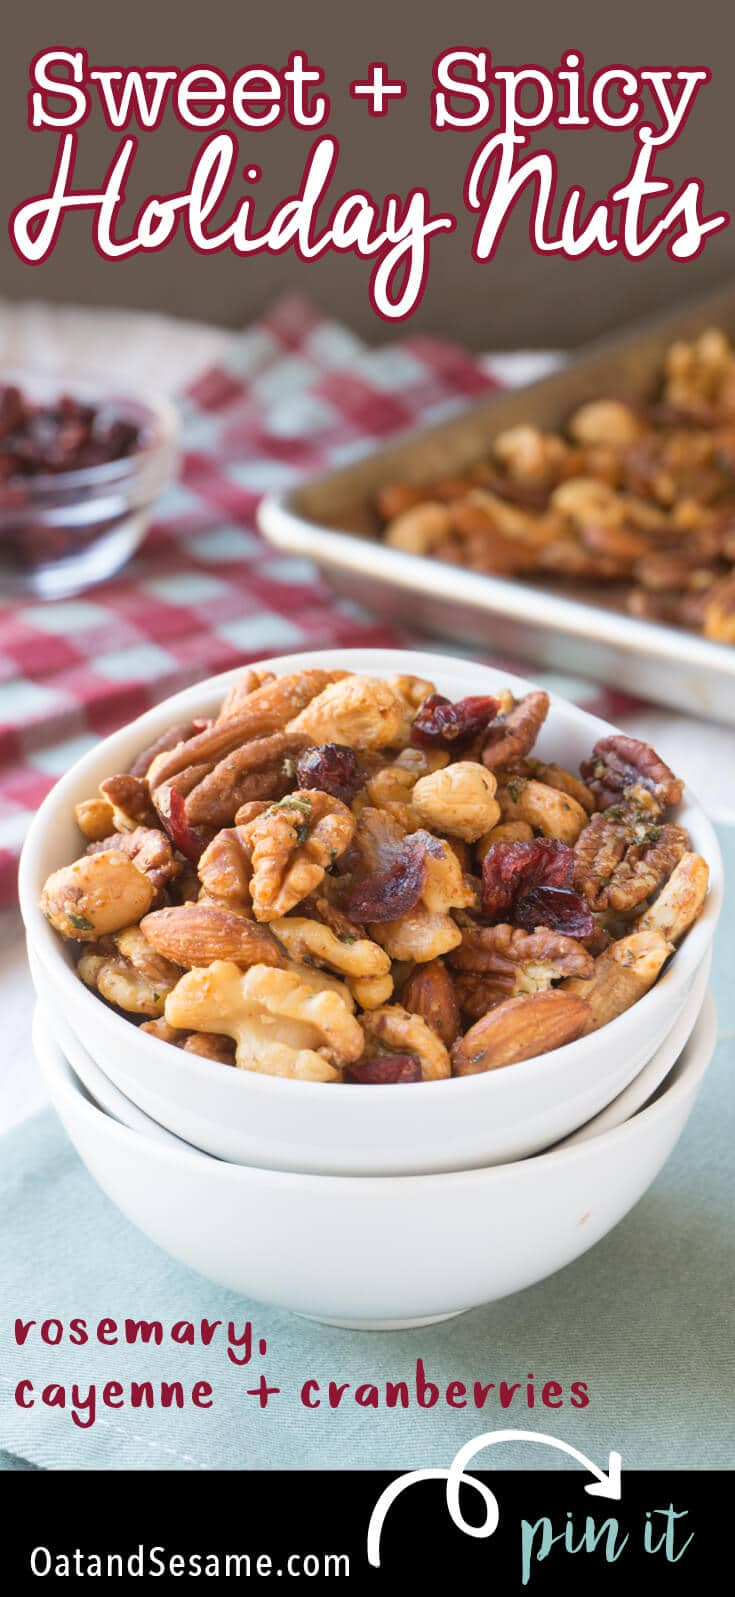 This Sweet and Spicy Holiday Nut Mix pairs perfectly with cocktails and beer. They make the perfect savory snack that balances out all the holiday sweetness.   #HOLIDAY   #APPETIZER   #NUTS   #Recipes at OatandSesame.com